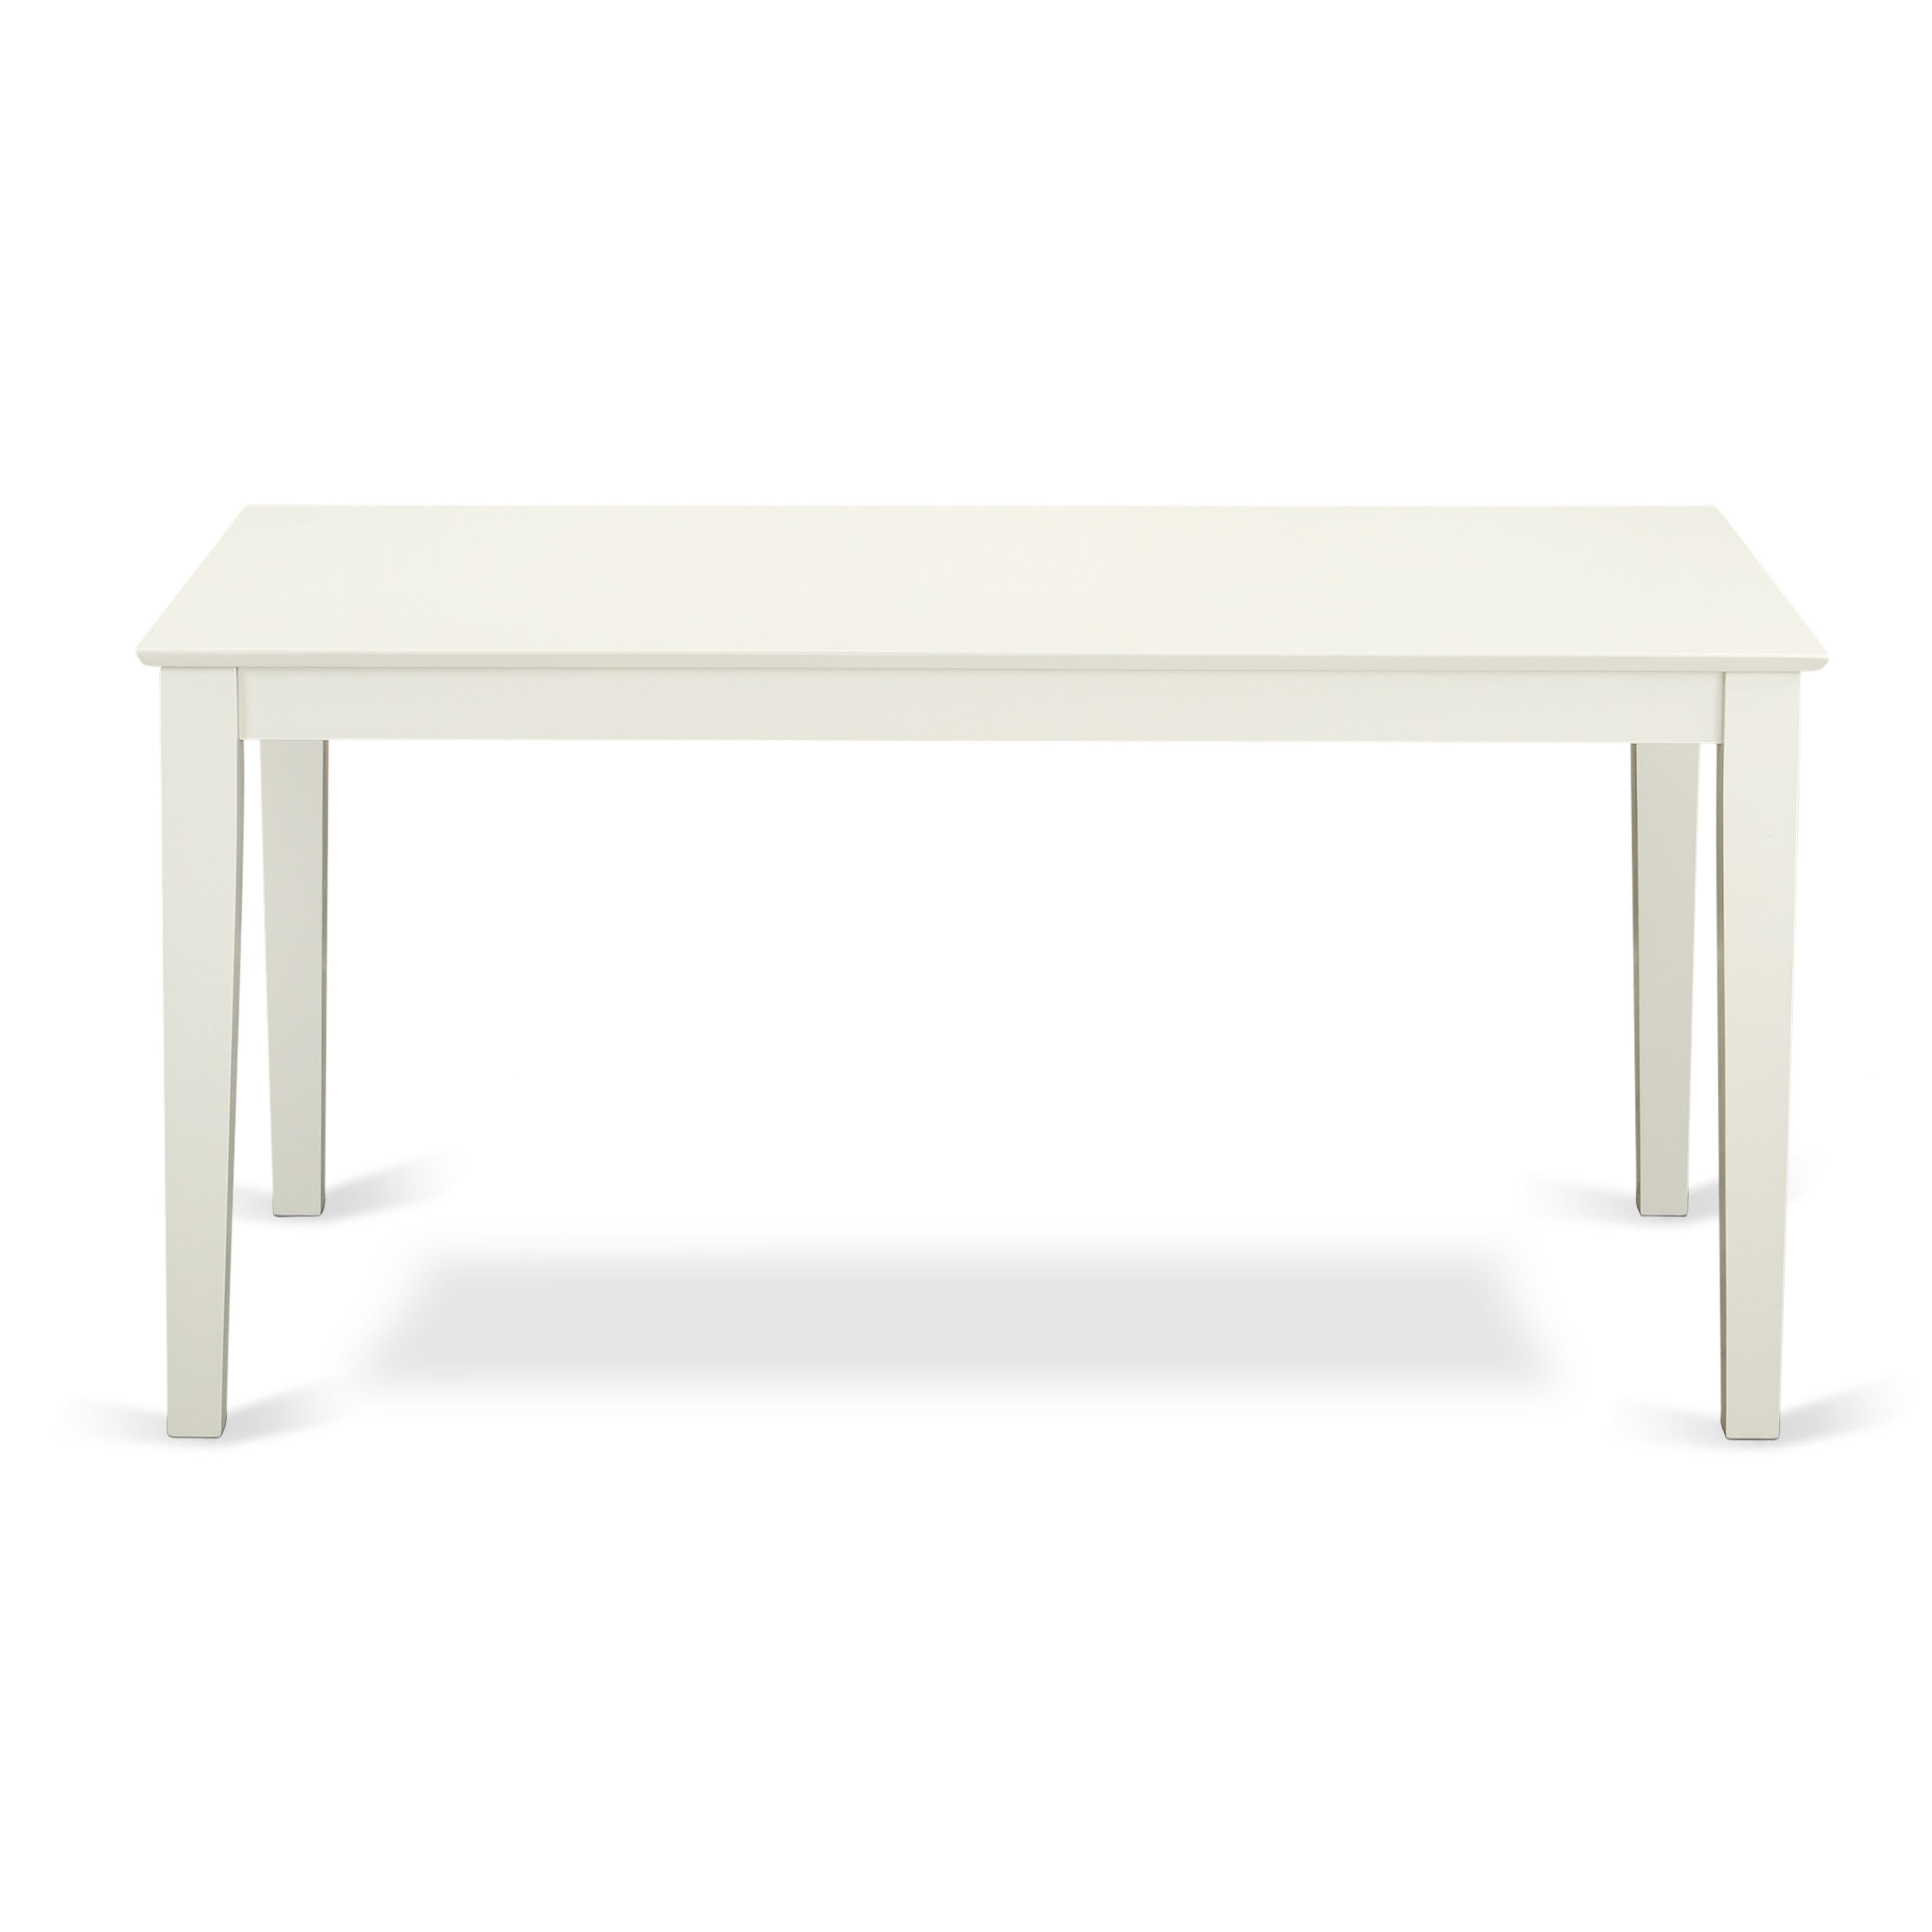 Capri Rectangular Dining Table 36 X60 With Solid Wood Top In Linen White Finish Off White Antique Dining Room Table Antique Dining Rooms Dining Room Table Set